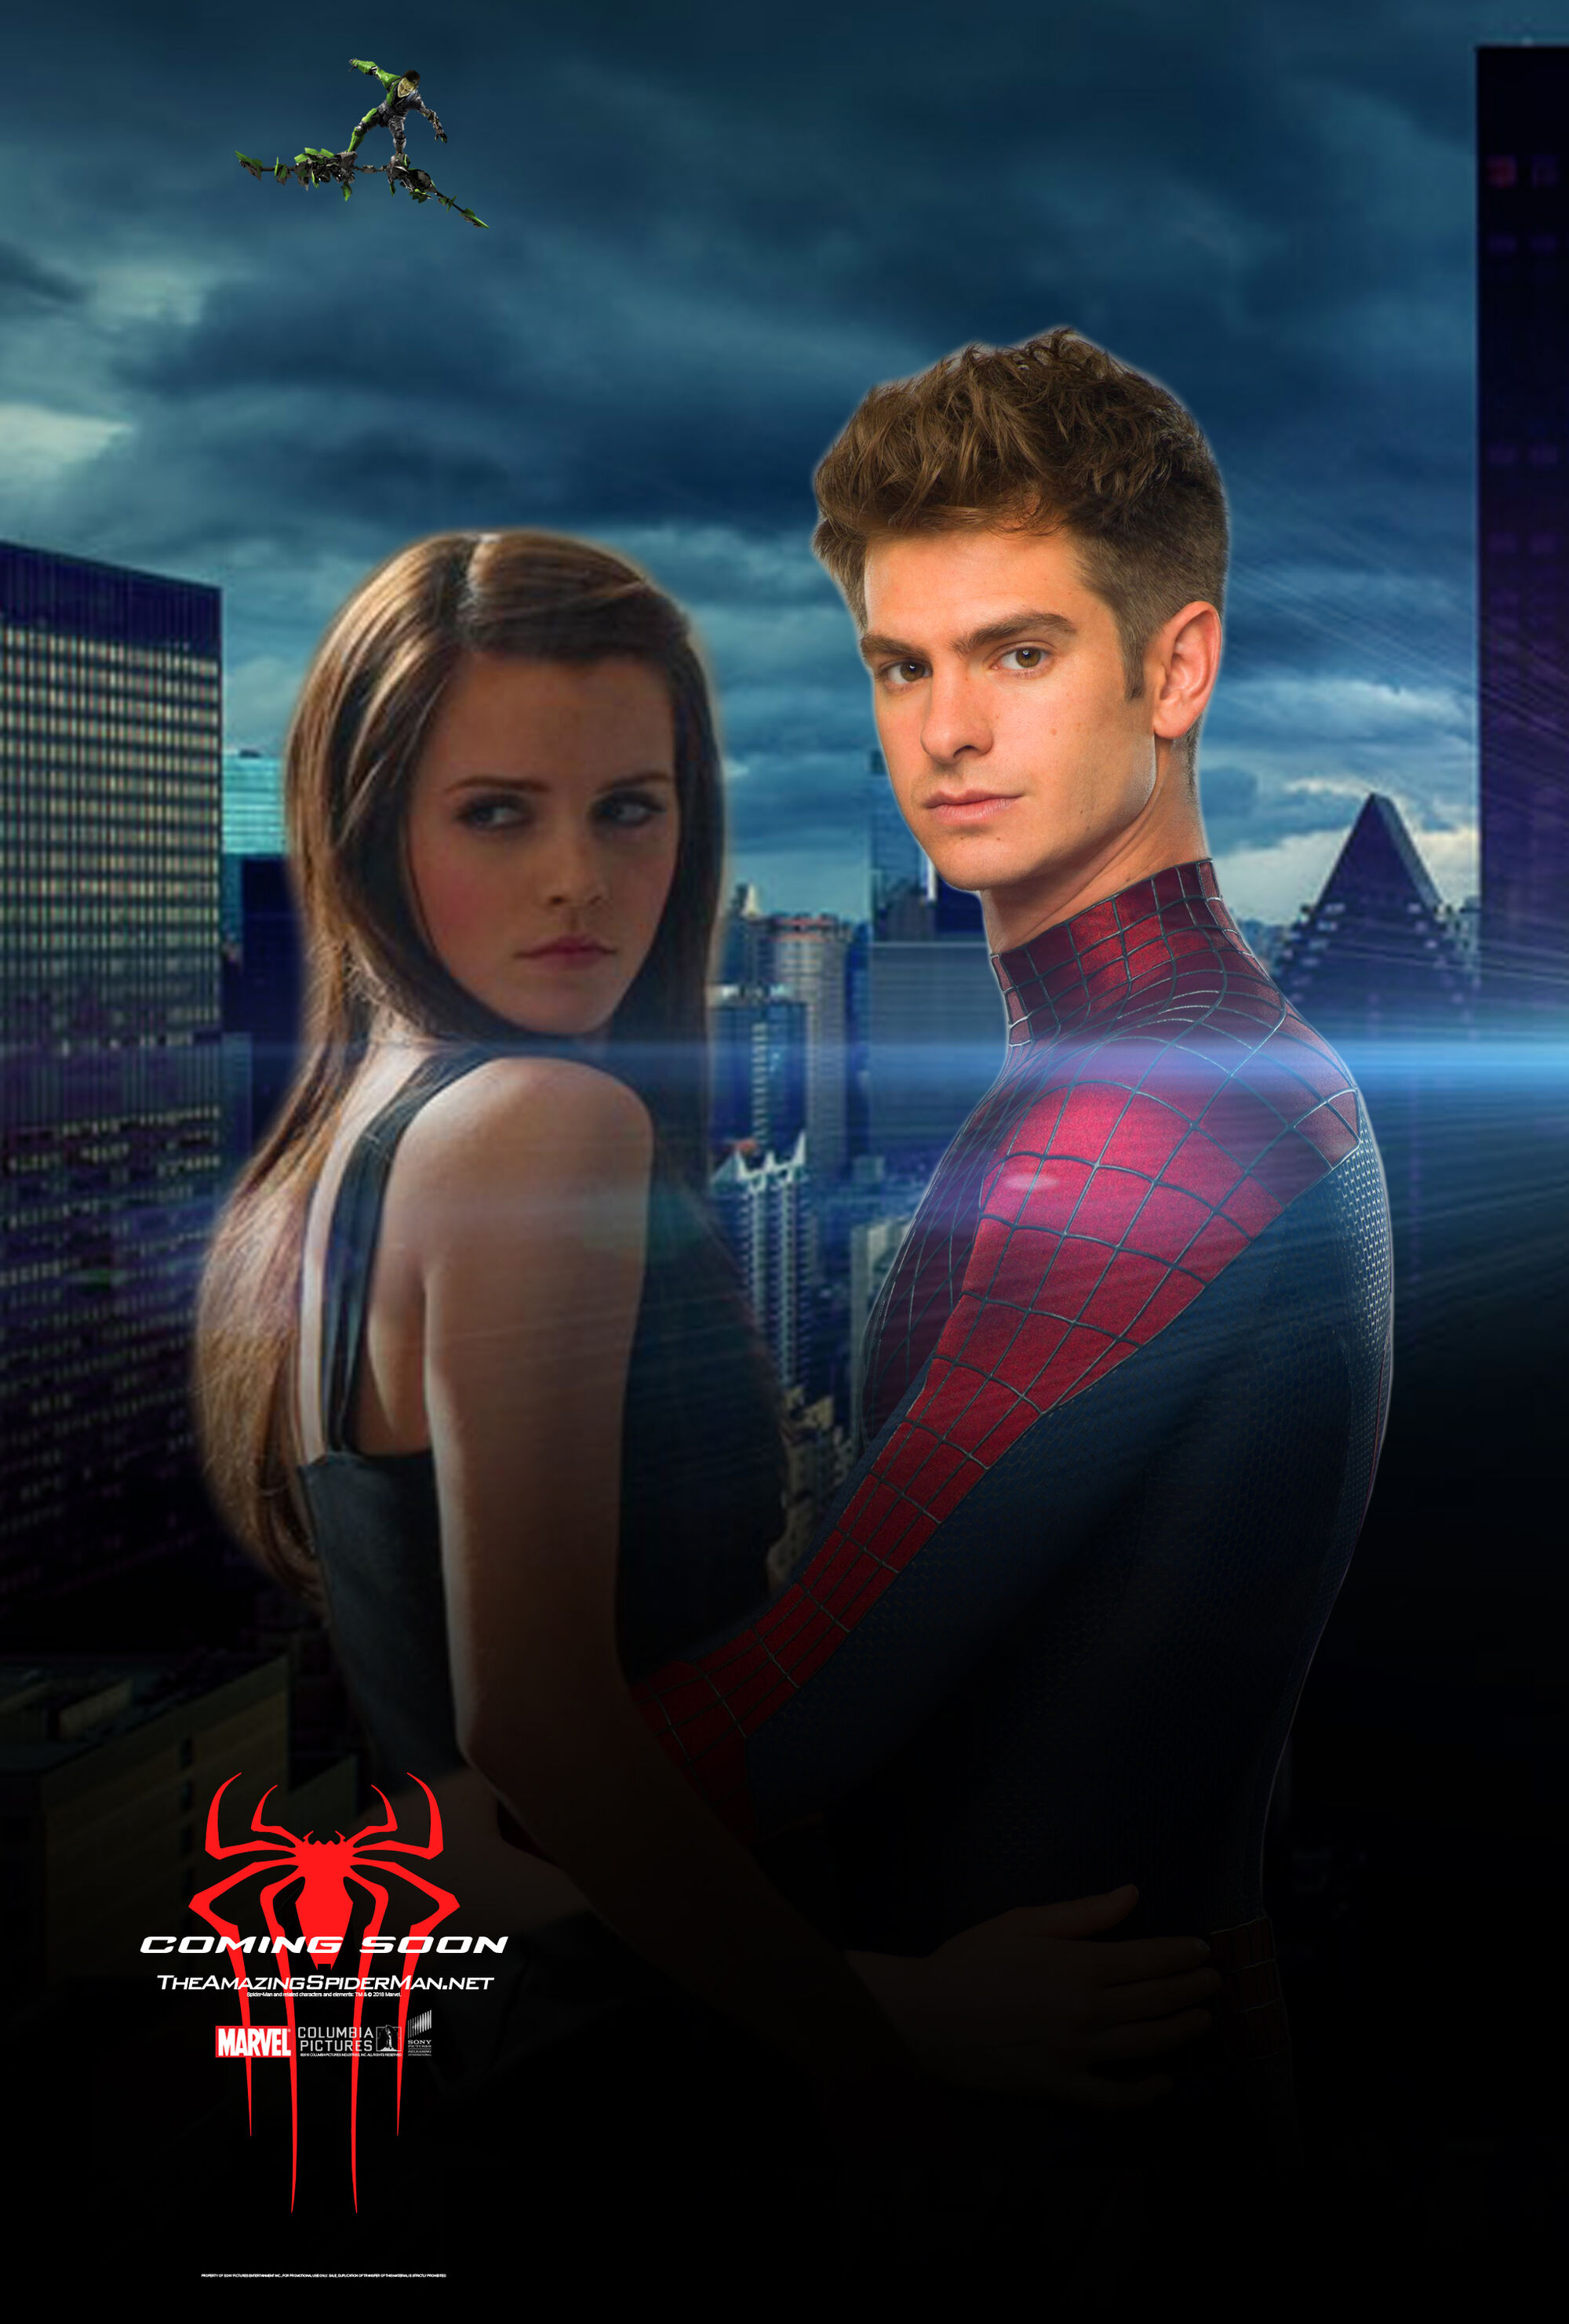 spider amazing movie movies marvel poster film wiki cancelled films wikia release international category 2000 fanon fandom